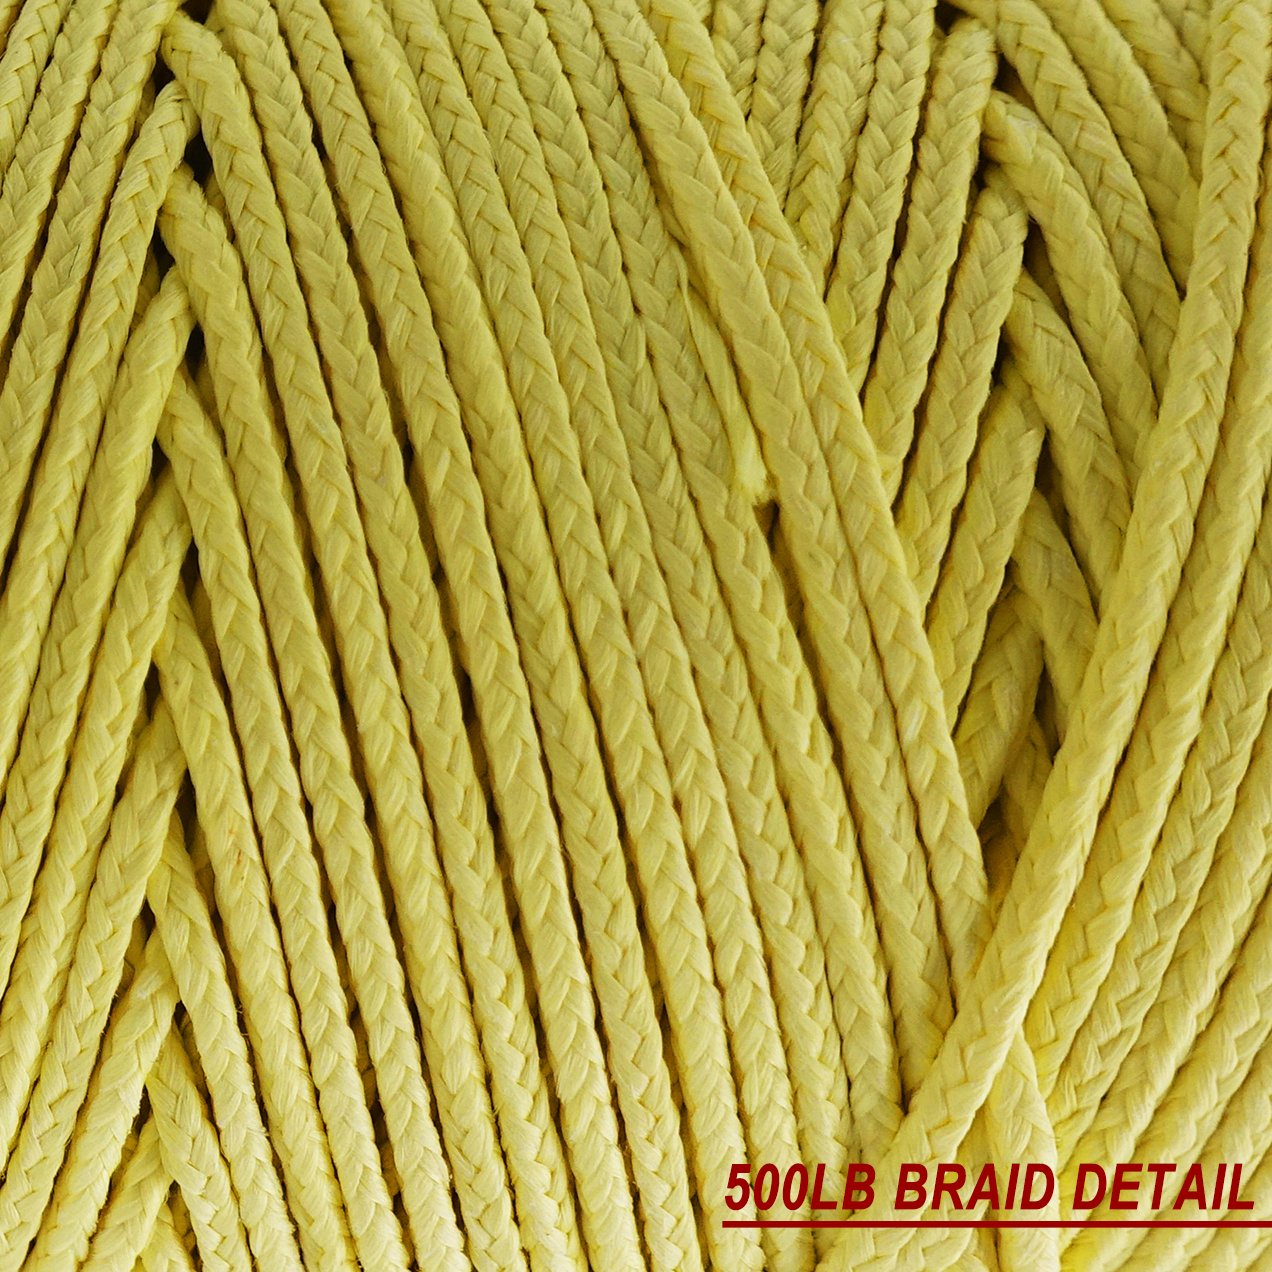 emma kites Kevlar Braided Cord 500lb 500ft High Strength Low Stretch Tent Tarp Guyline Suspension for Camping Hiking Backpacking Recreational Marine Outdoors Activities by emma kites (Image #3)